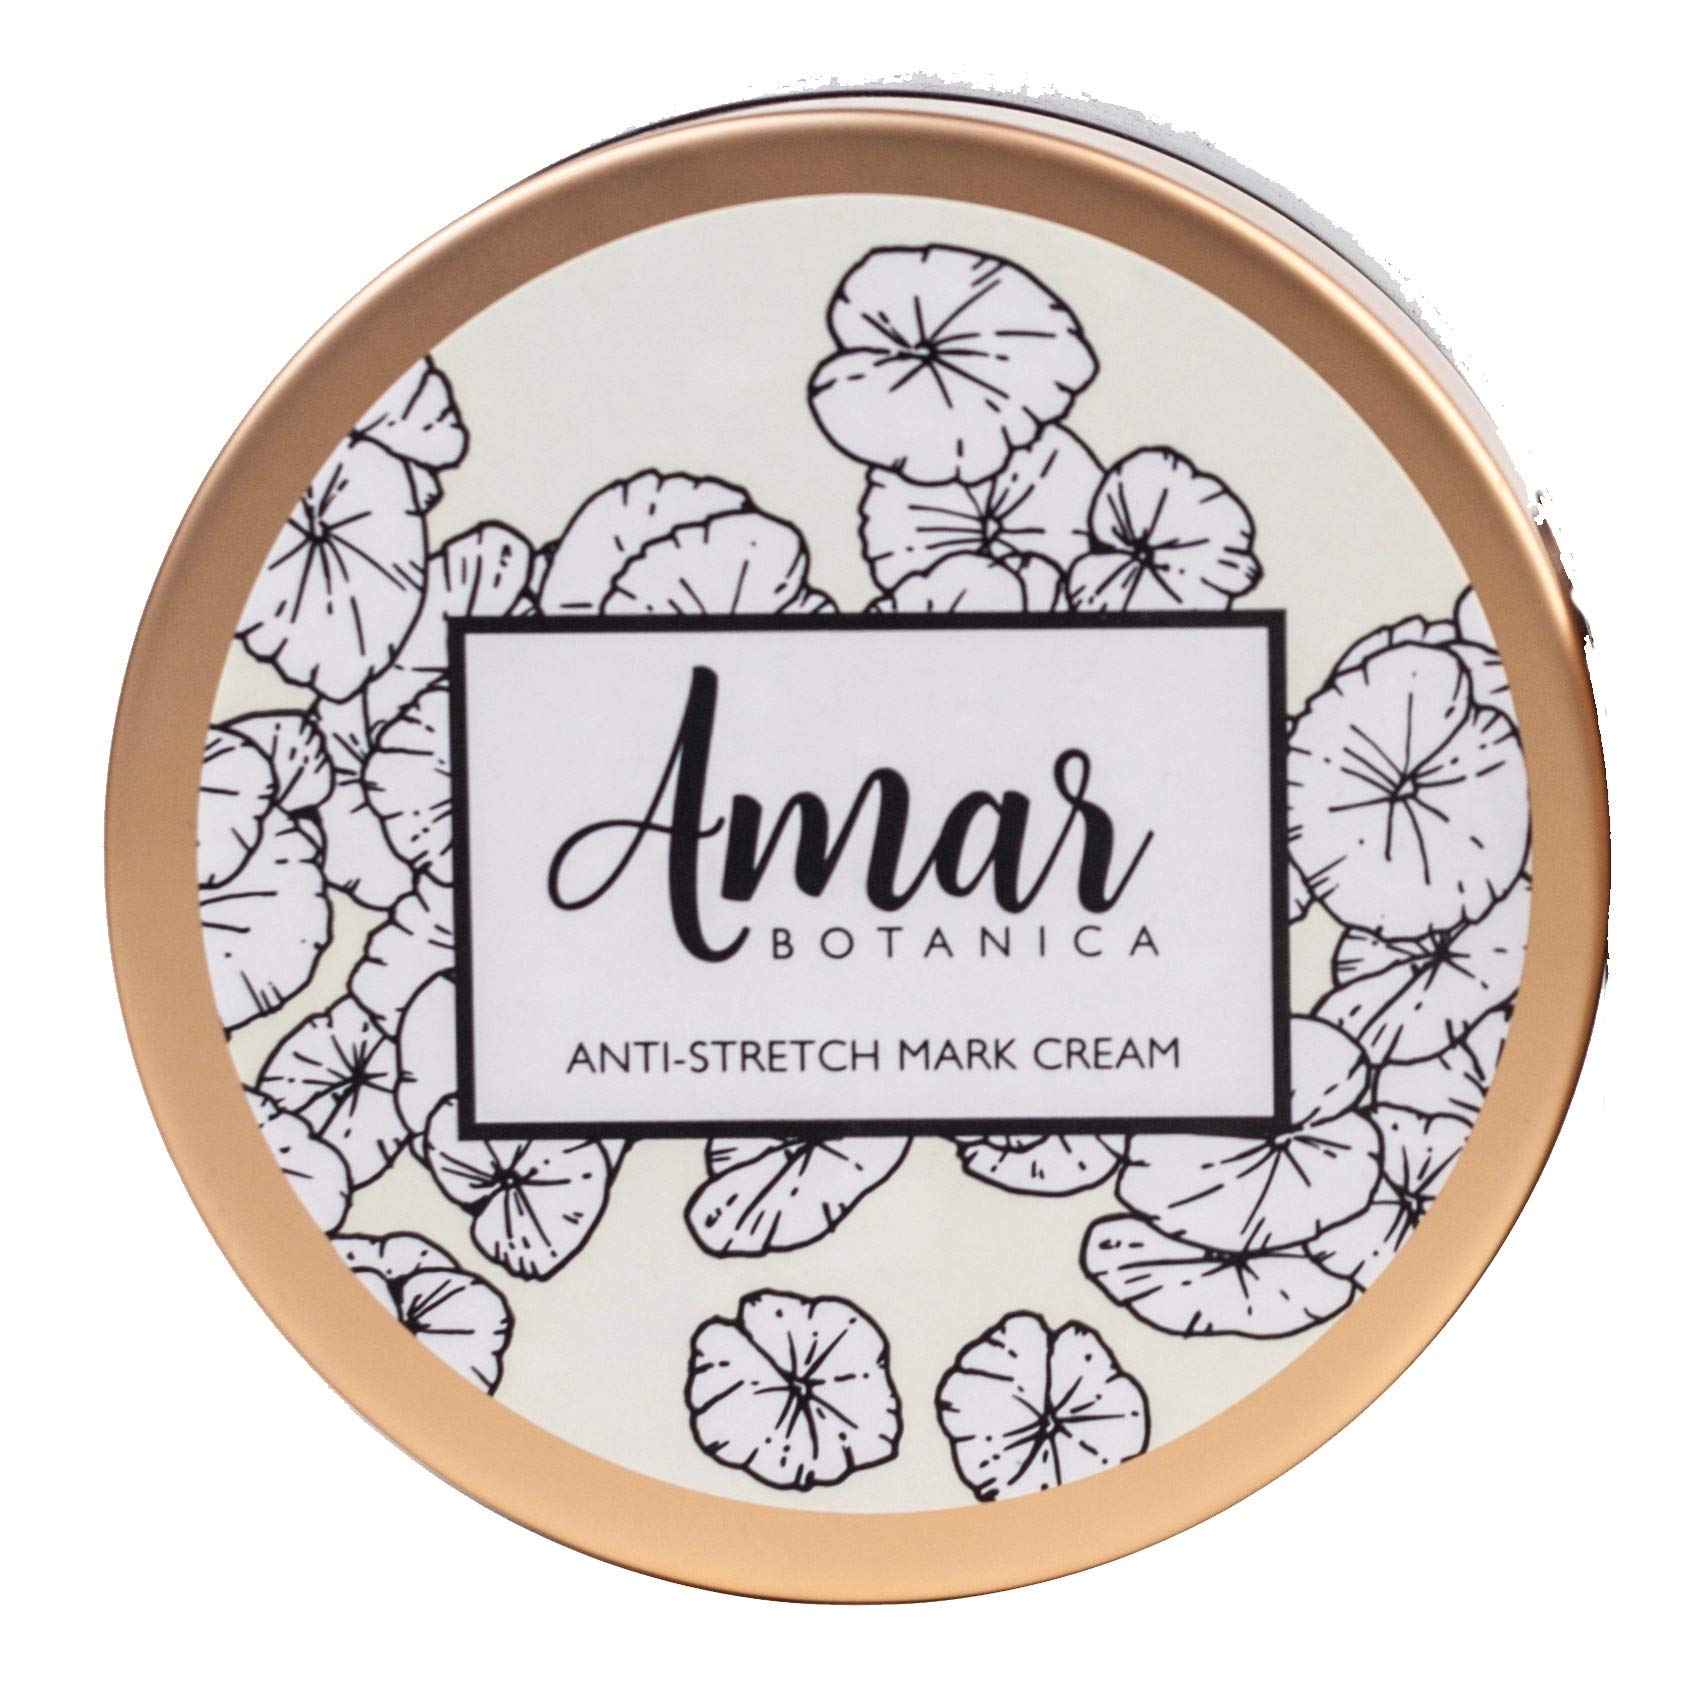 Pregnancy Stretch Marks Prevention and Removal Cream | OBGYN Recommended Amar Botanica | 100% Safe for Unborn Baby and Mommy | Vegan, Paraben-Free, Organic Formulation 8oz by Amar Botanica